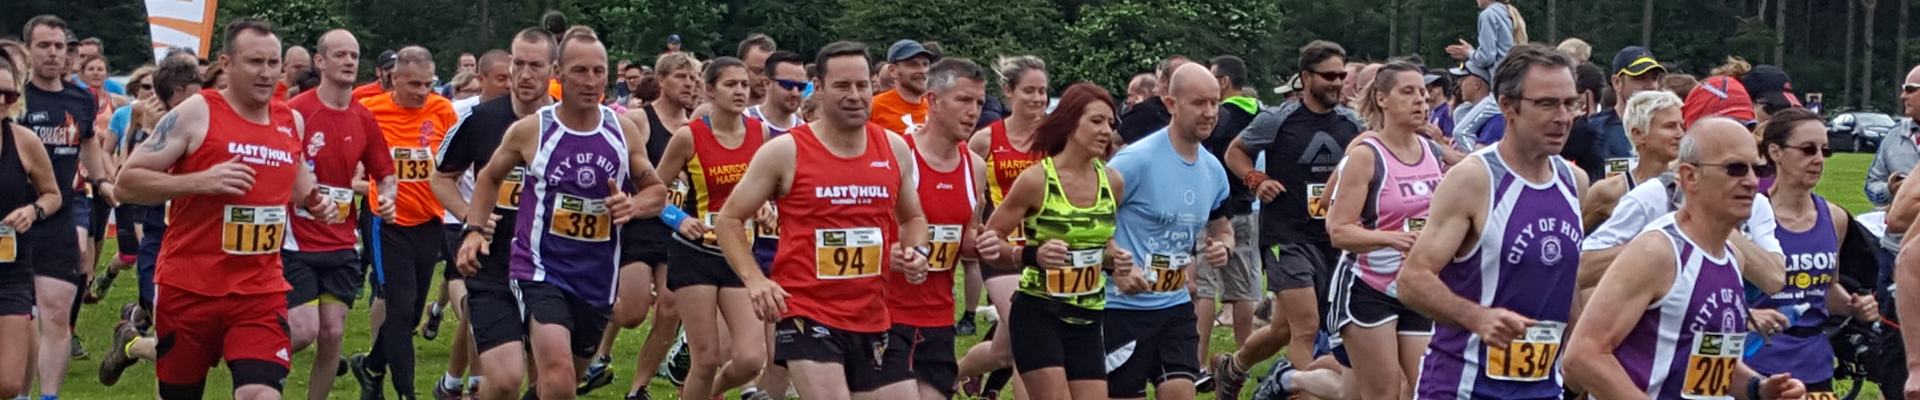 Dalby Conquer the Forest Half Marathon & 10k 2021